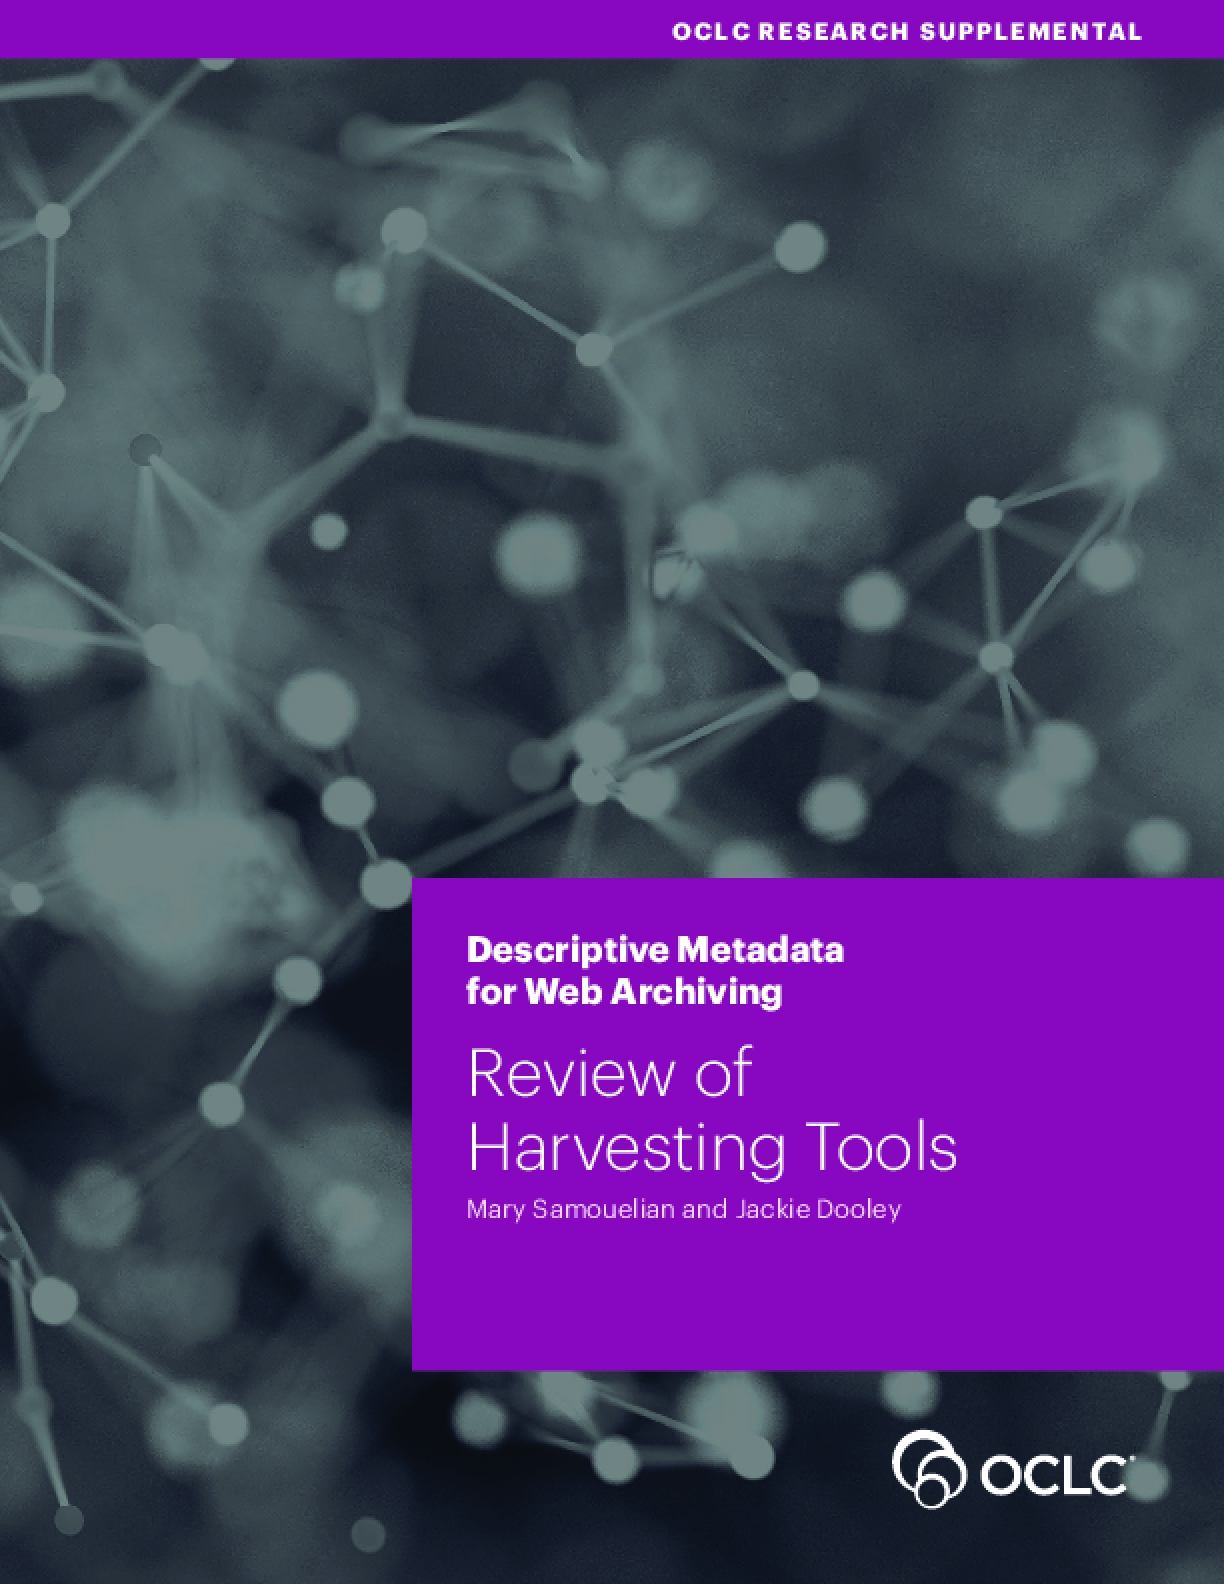 Descriptive Metadata for Web Archiving: Review of Harvesting Tools